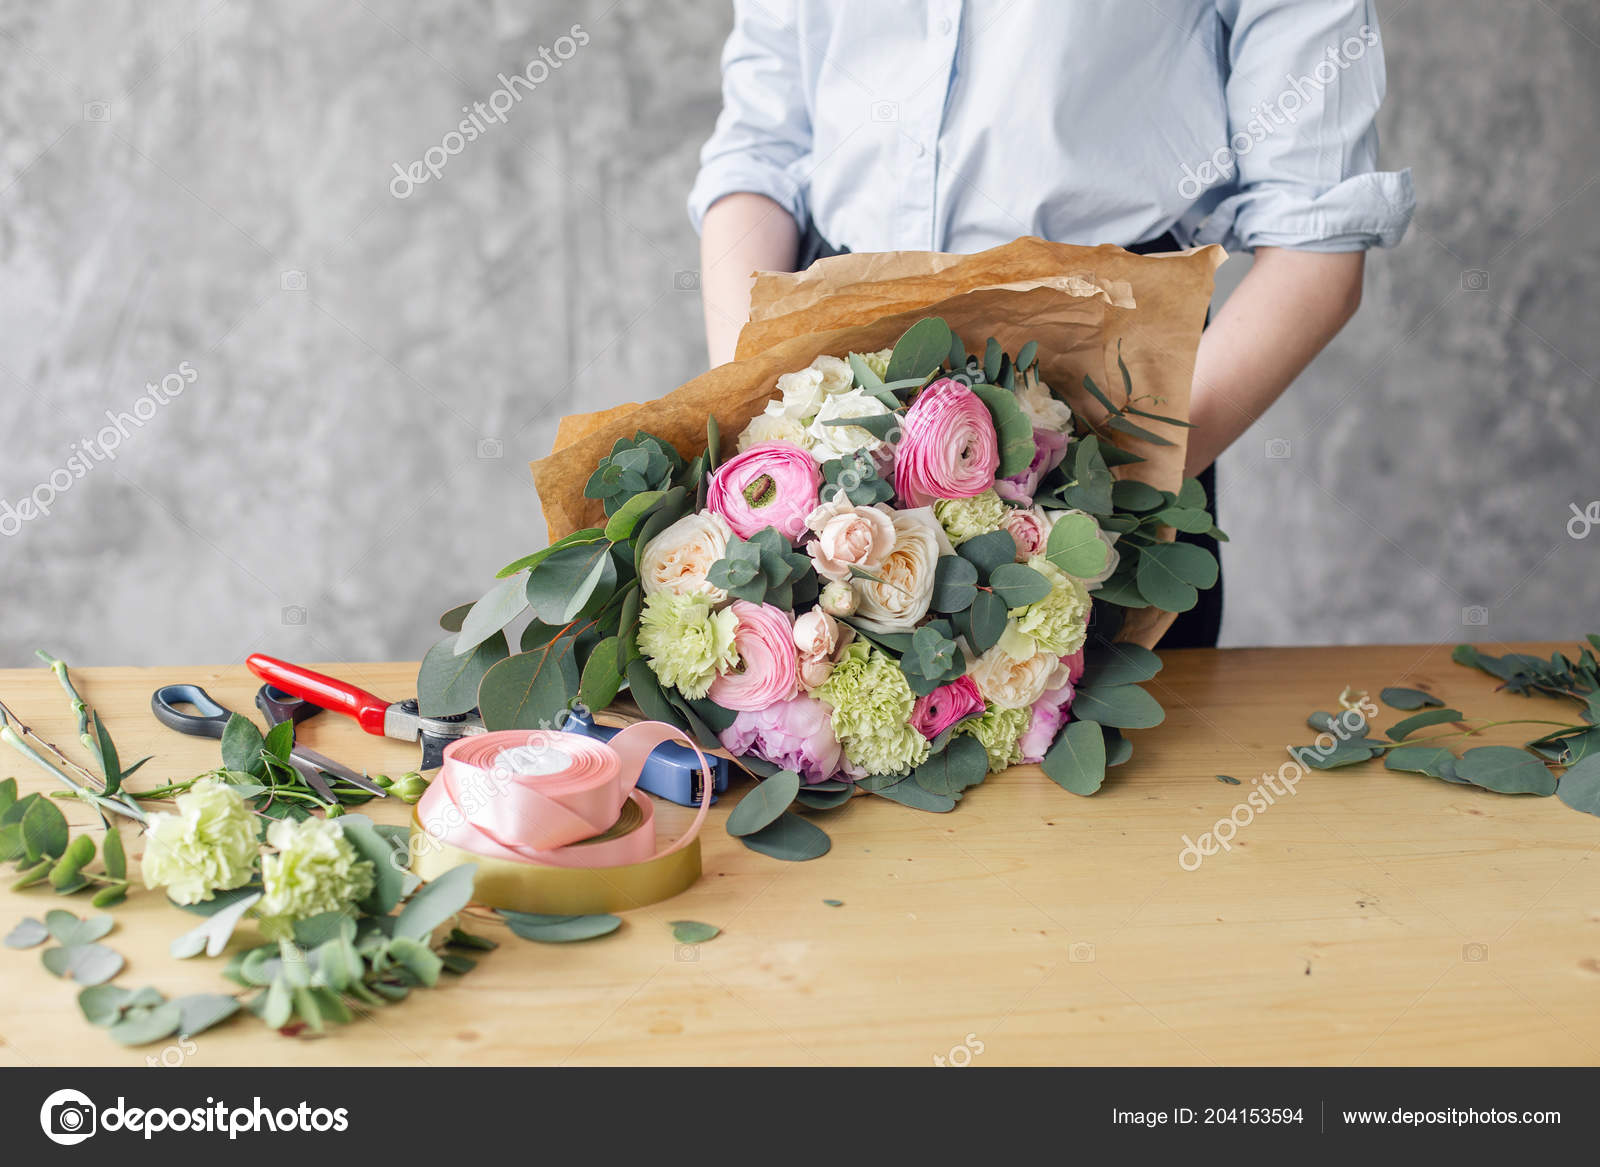 Woman Florist Creating Beautiful Bouquet In Flower Shop Working In